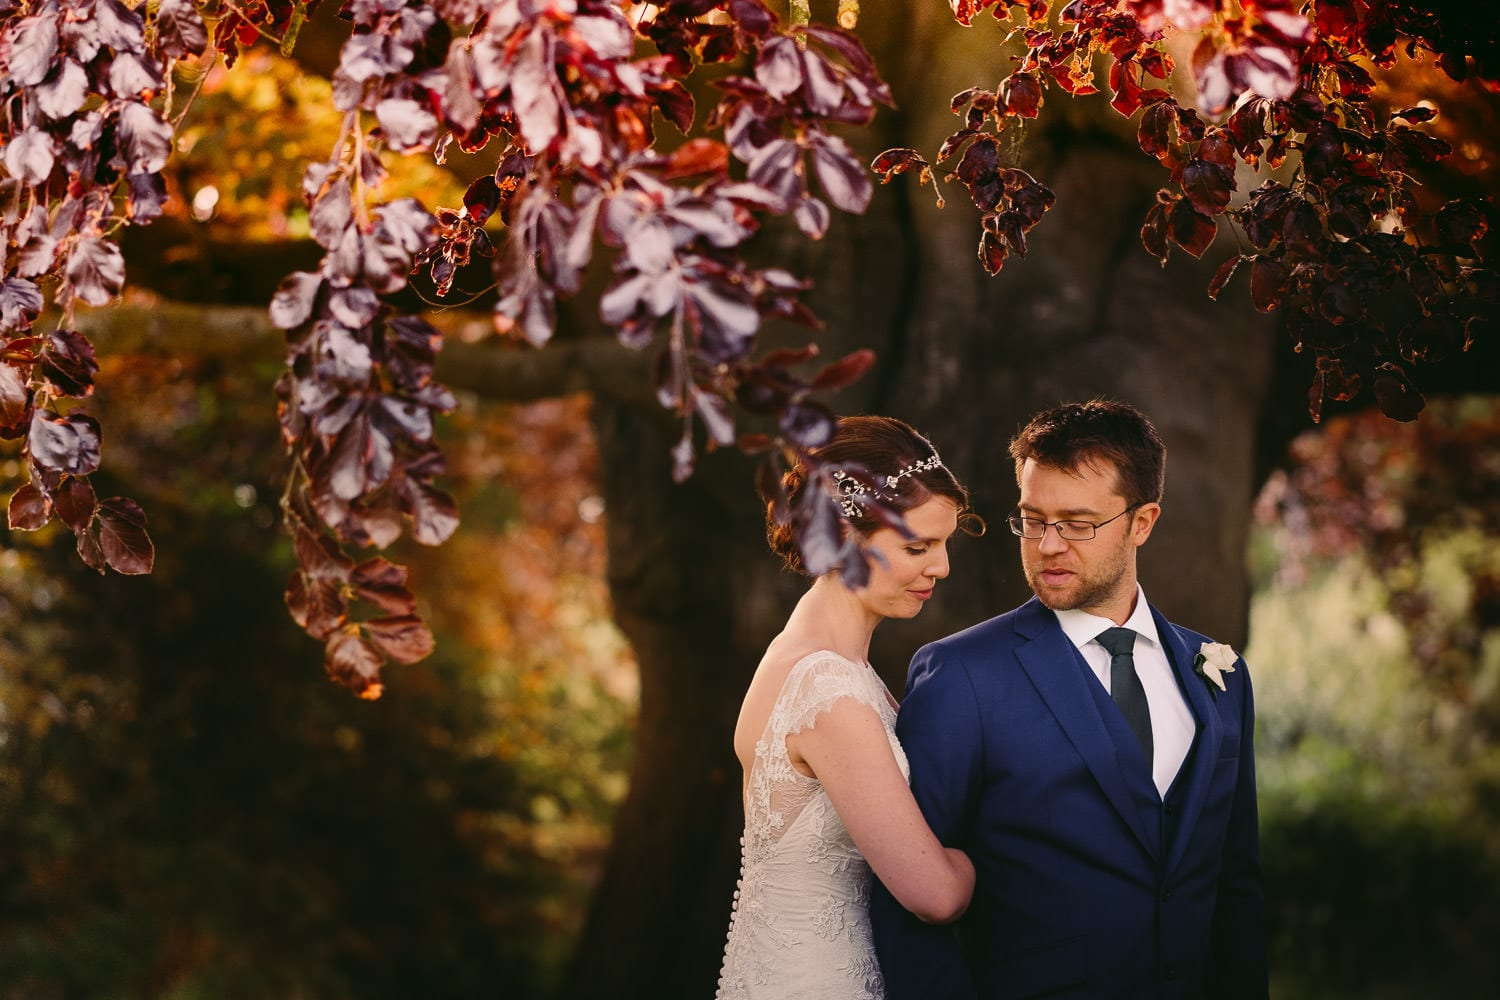 A portrait of the bride and groom at Elmore Court